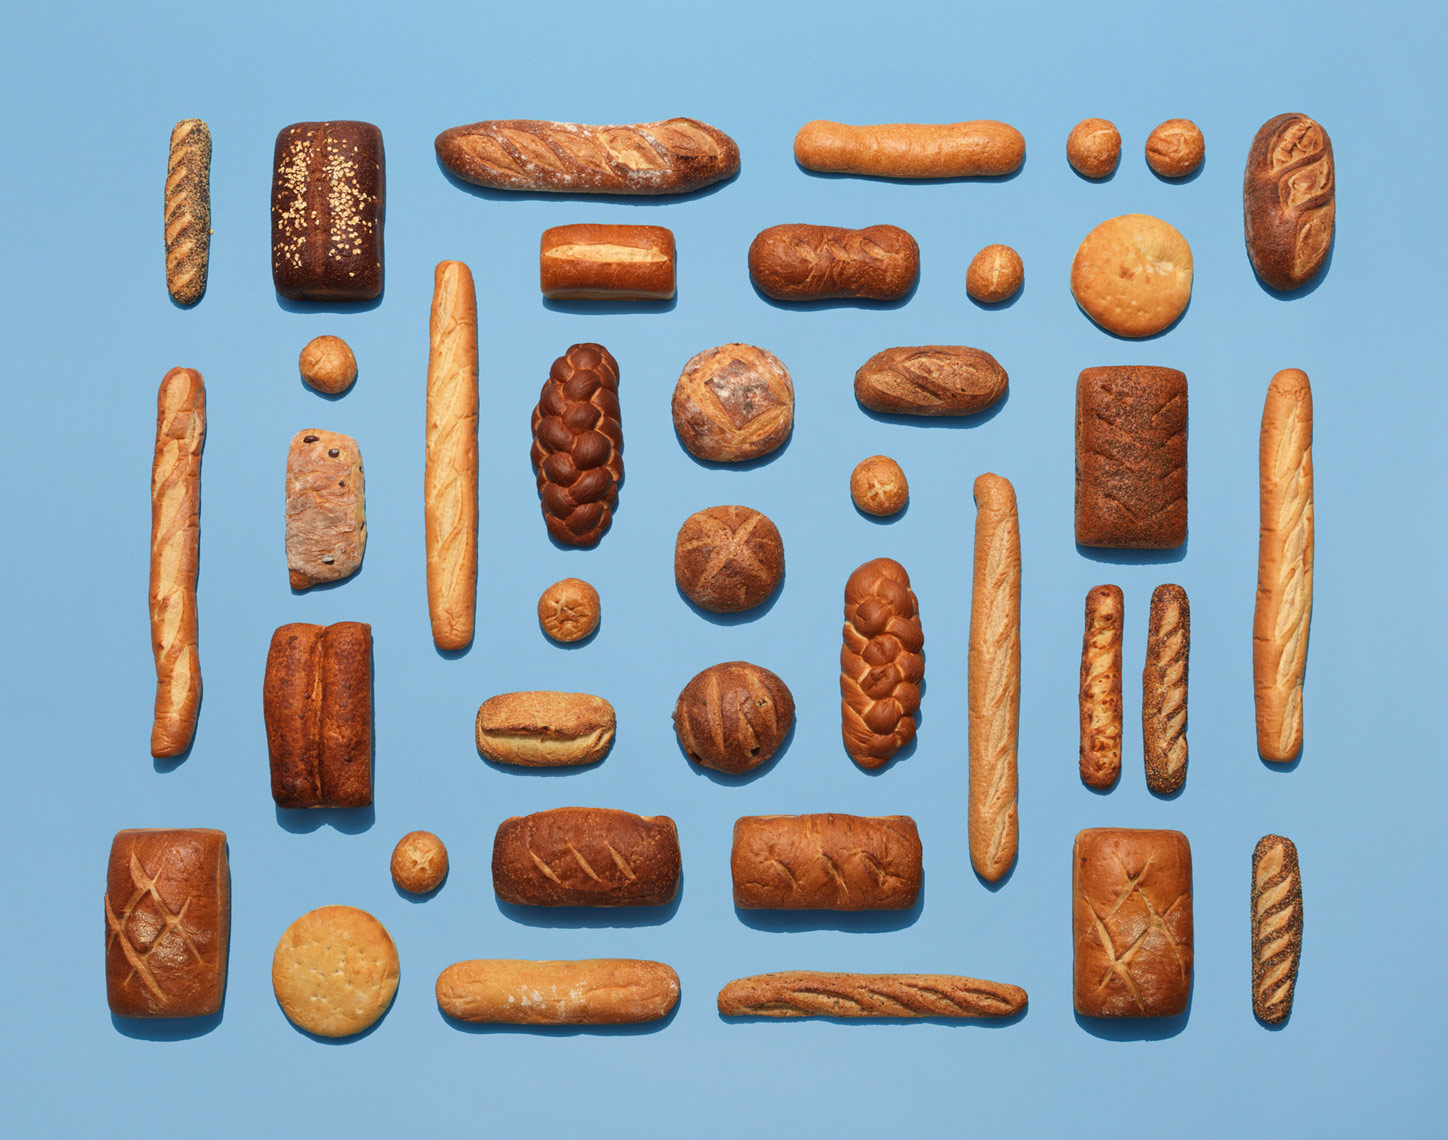 variety of crusty artisanal breads in a rectangle